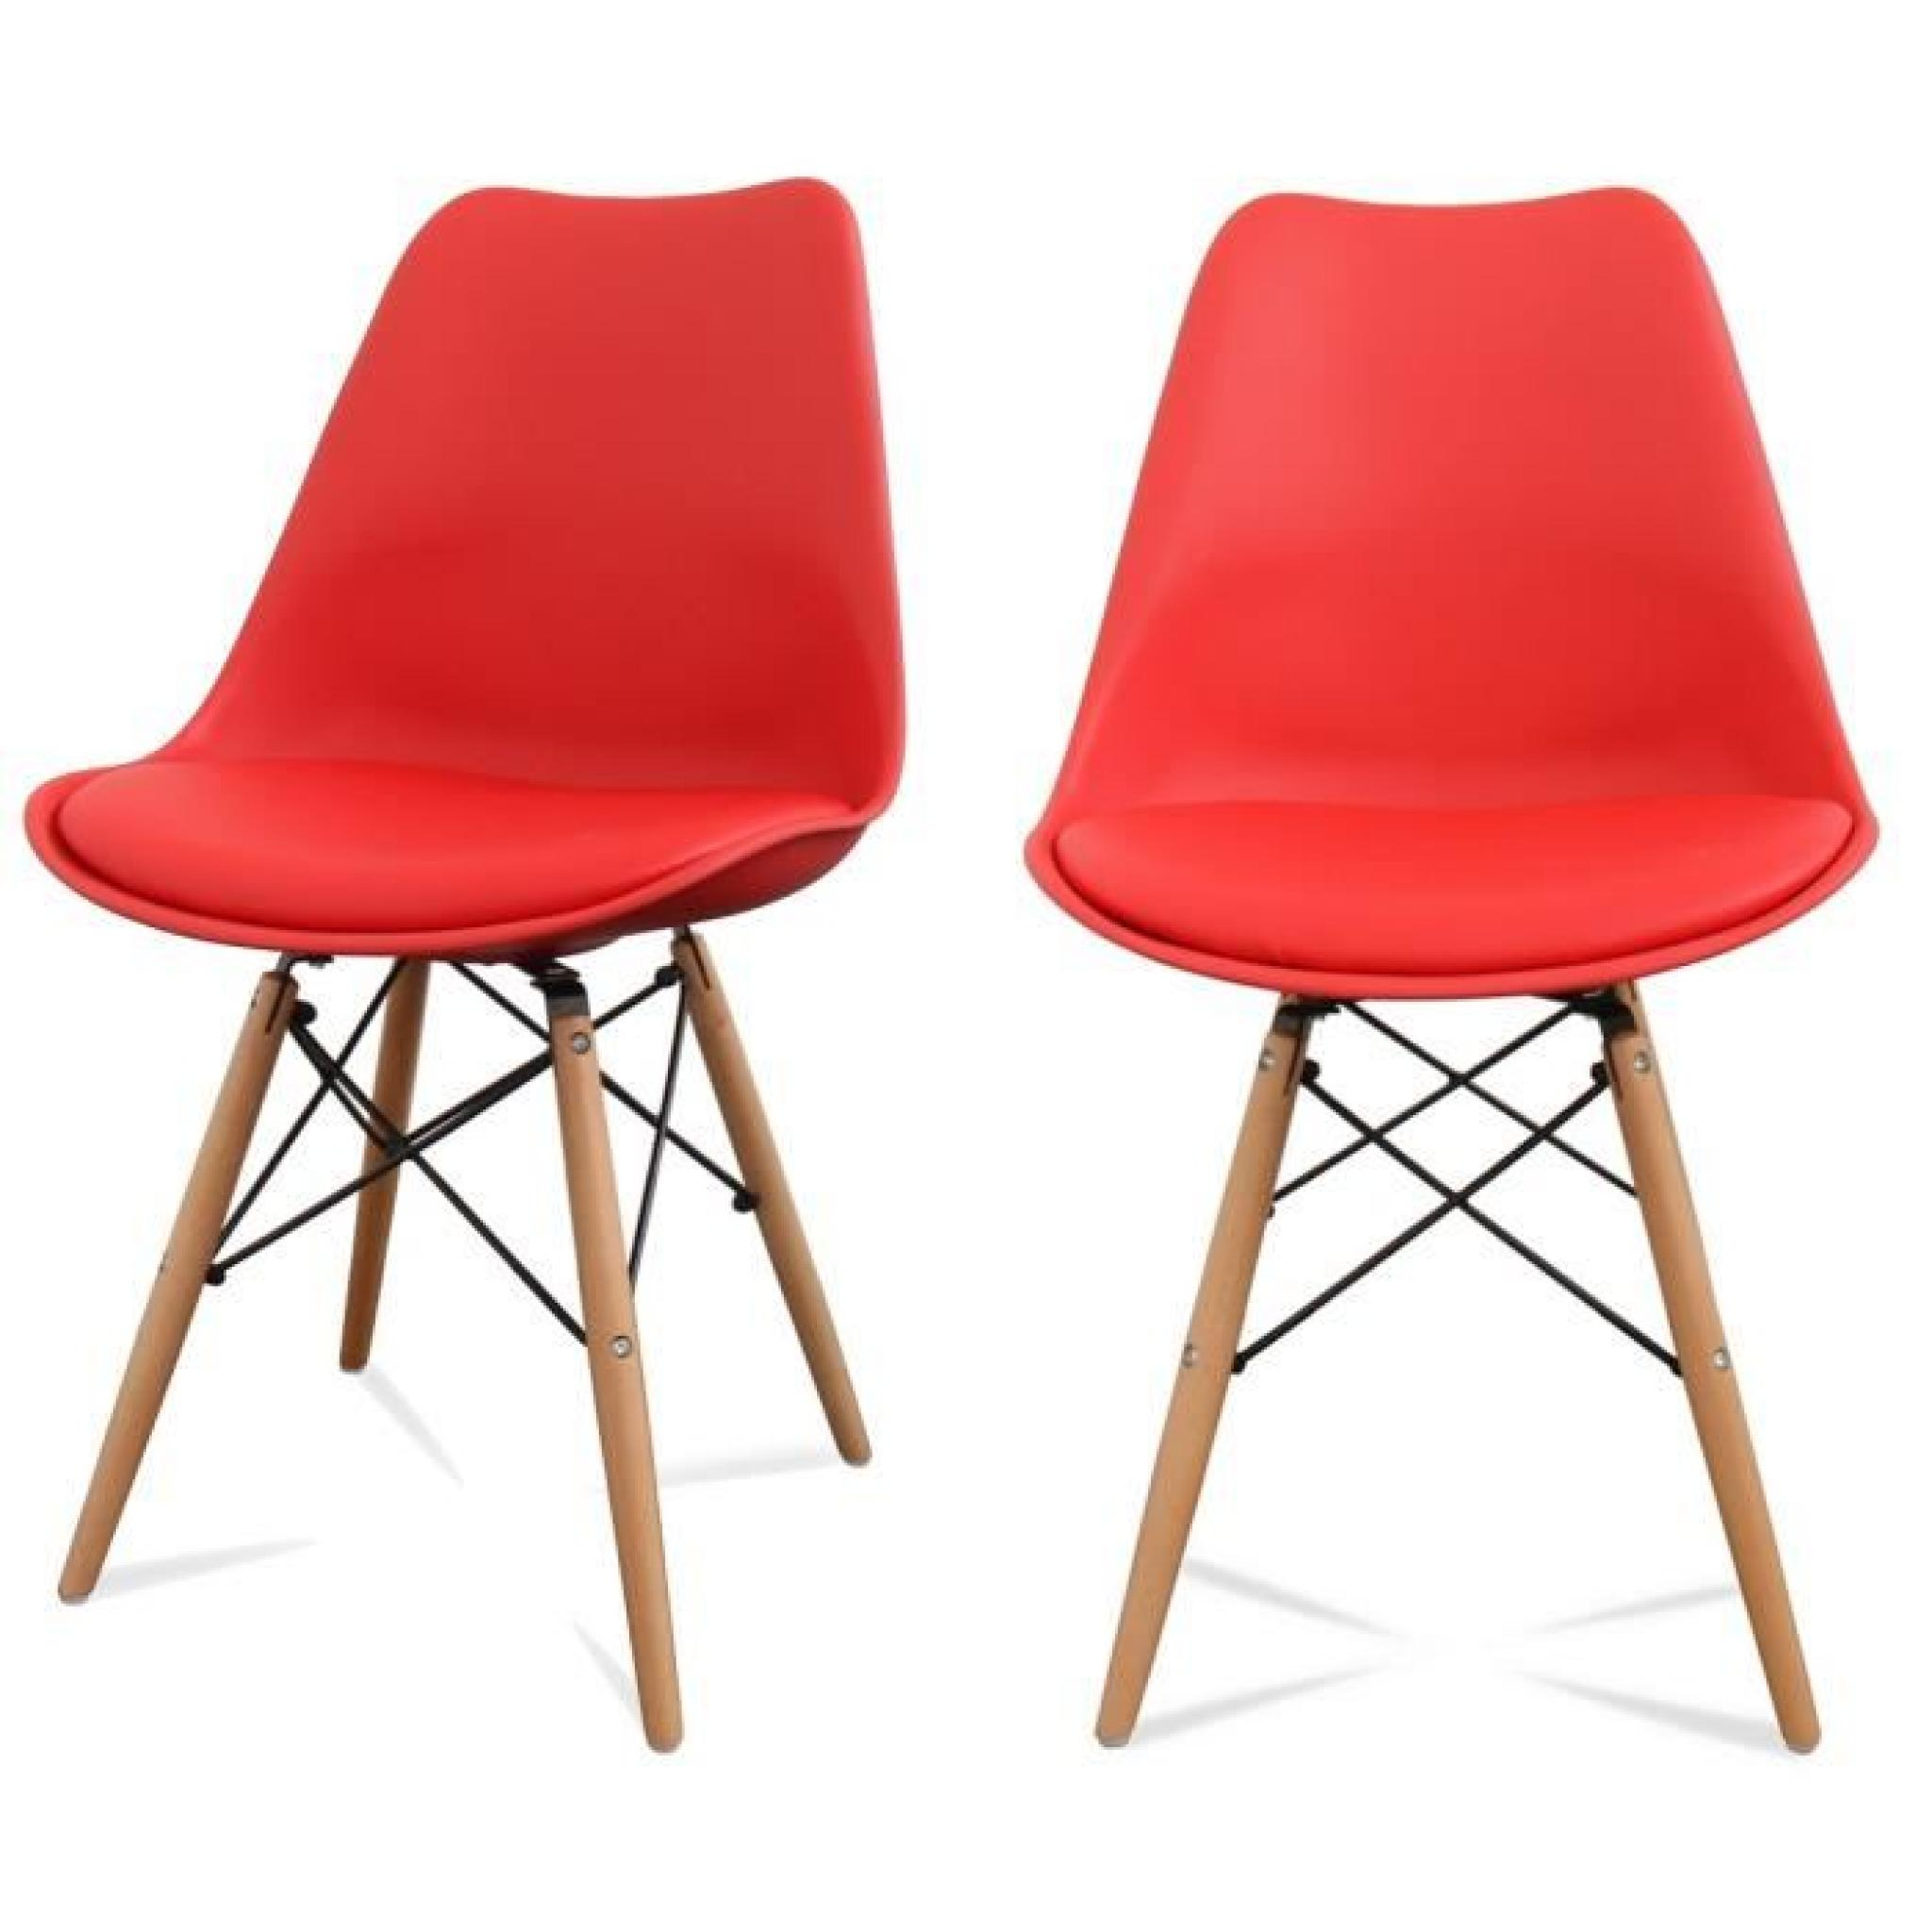 lot de 2 chaises design ormond dsw couleur rouge achat vente chaise salle a manger pas cher. Black Bedroom Furniture Sets. Home Design Ideas